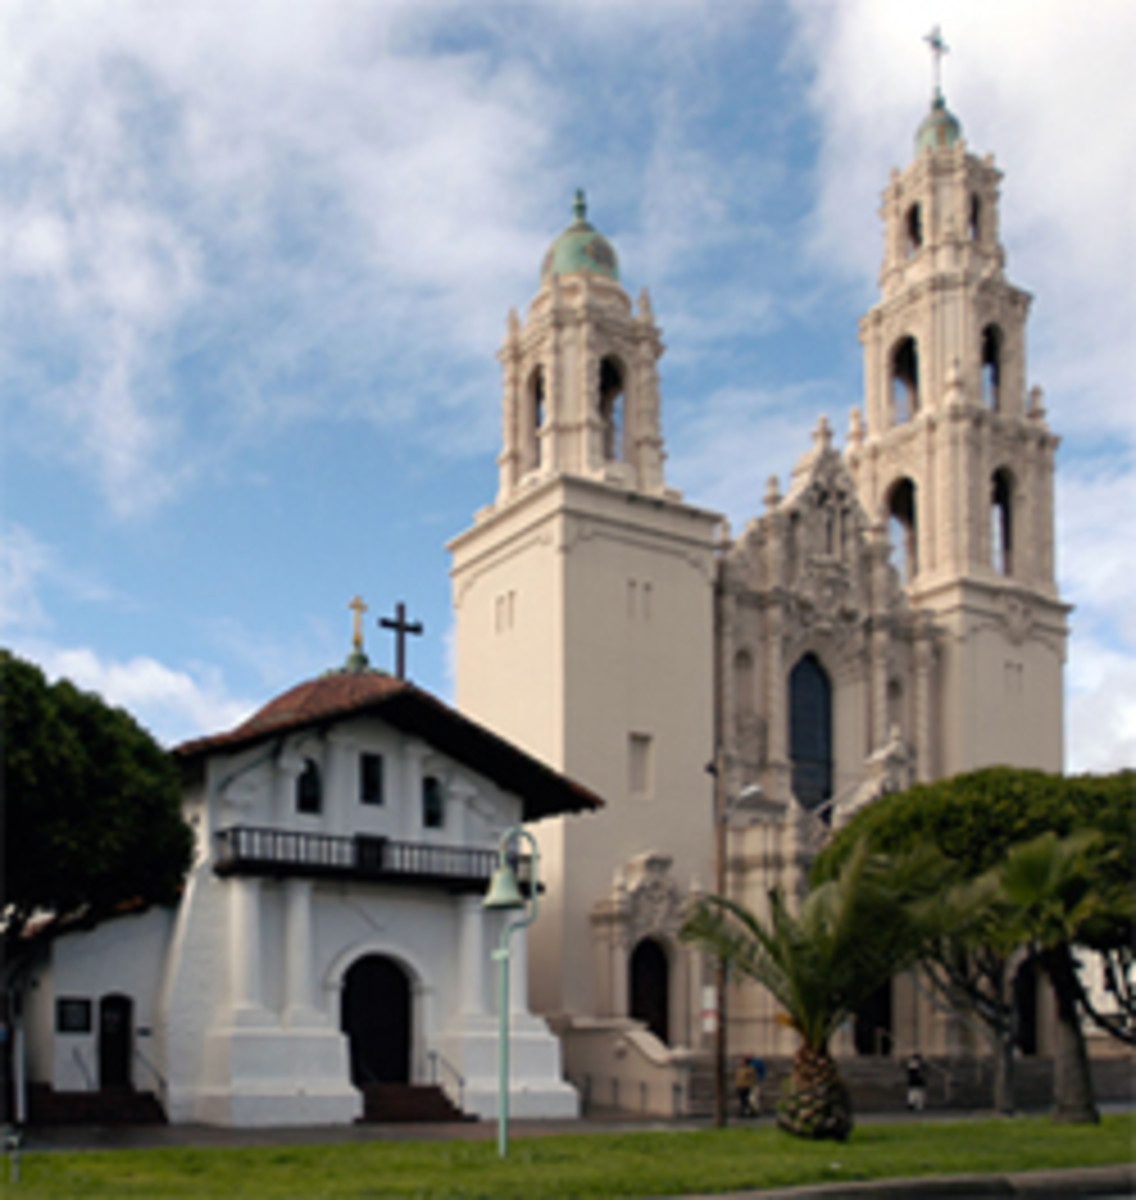 The Dolores chapel and church in San Francisco.